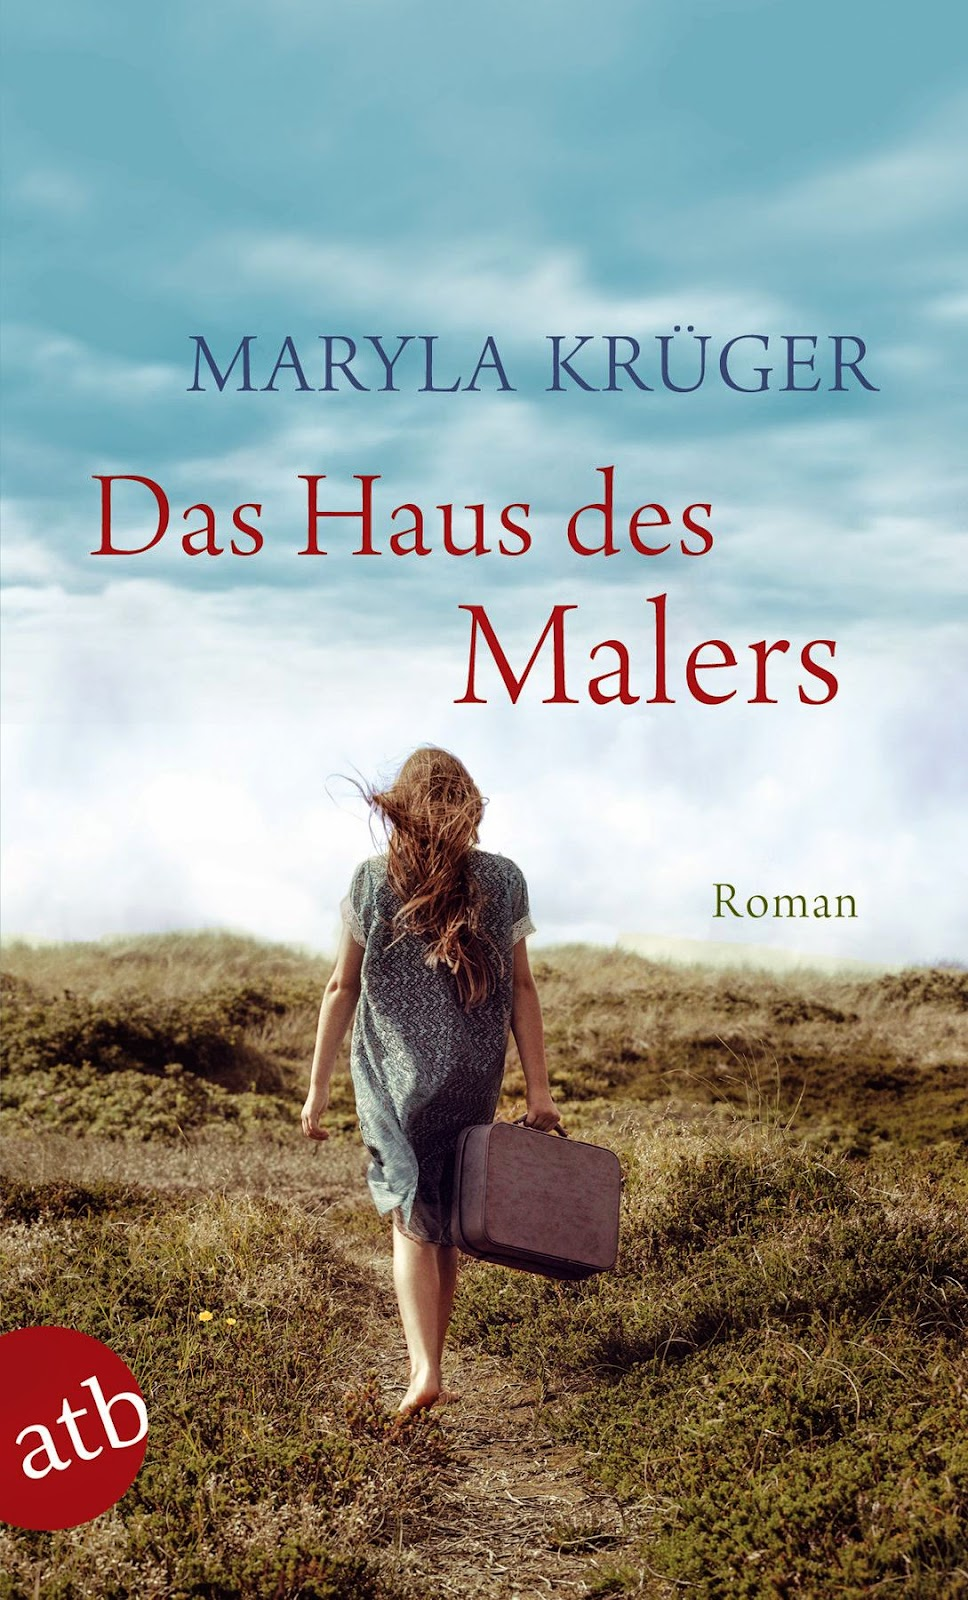 http://www.amazon.de/gp/product/3746630363?ie=UTF8&camp=1638&creativeASIN=3746630363&linkCode=xm2&tag=lesebookloun-21